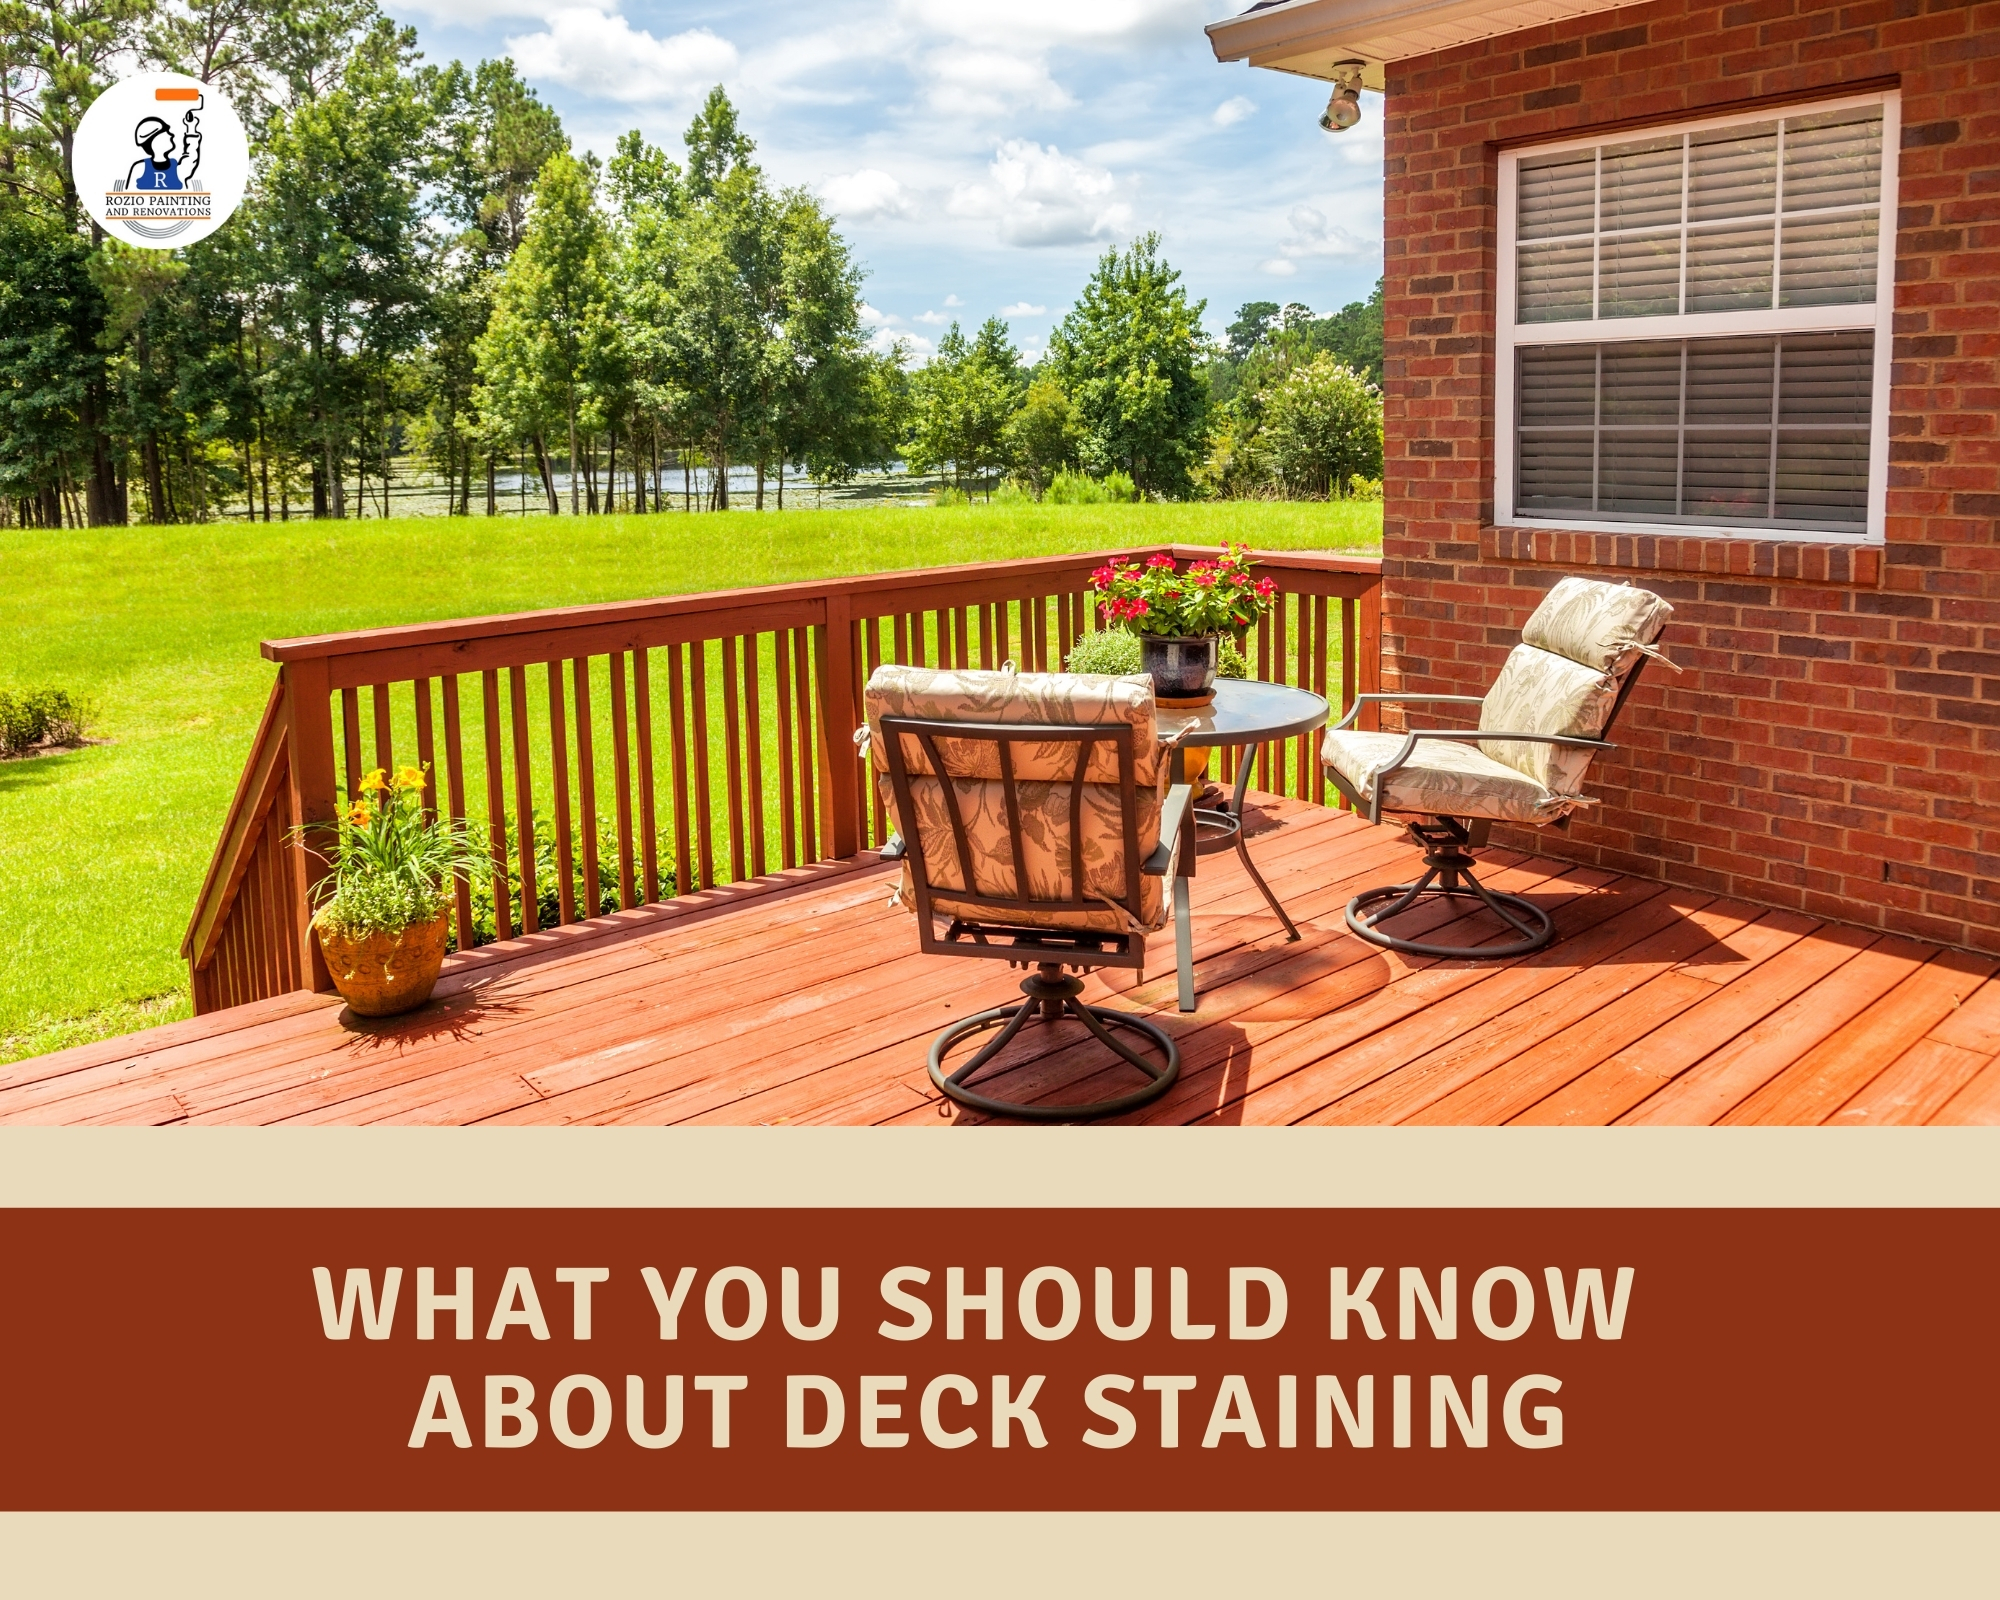 What You Should Know About Deck Staining